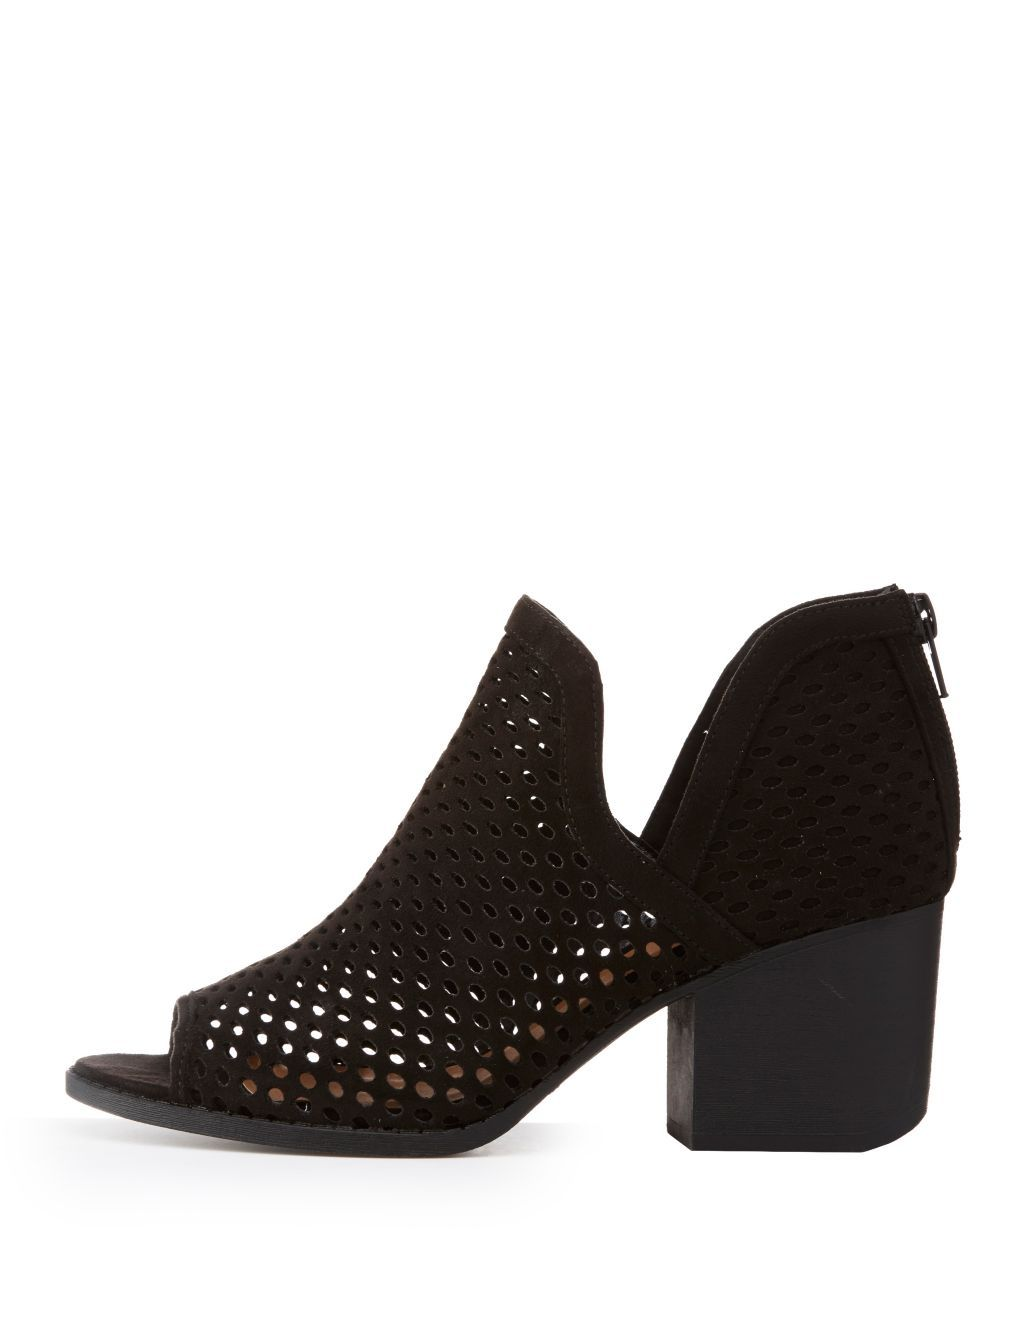 1796baaa08e5 Buy Charlotte Russe Perforated Peep Toe Booties in Egypt